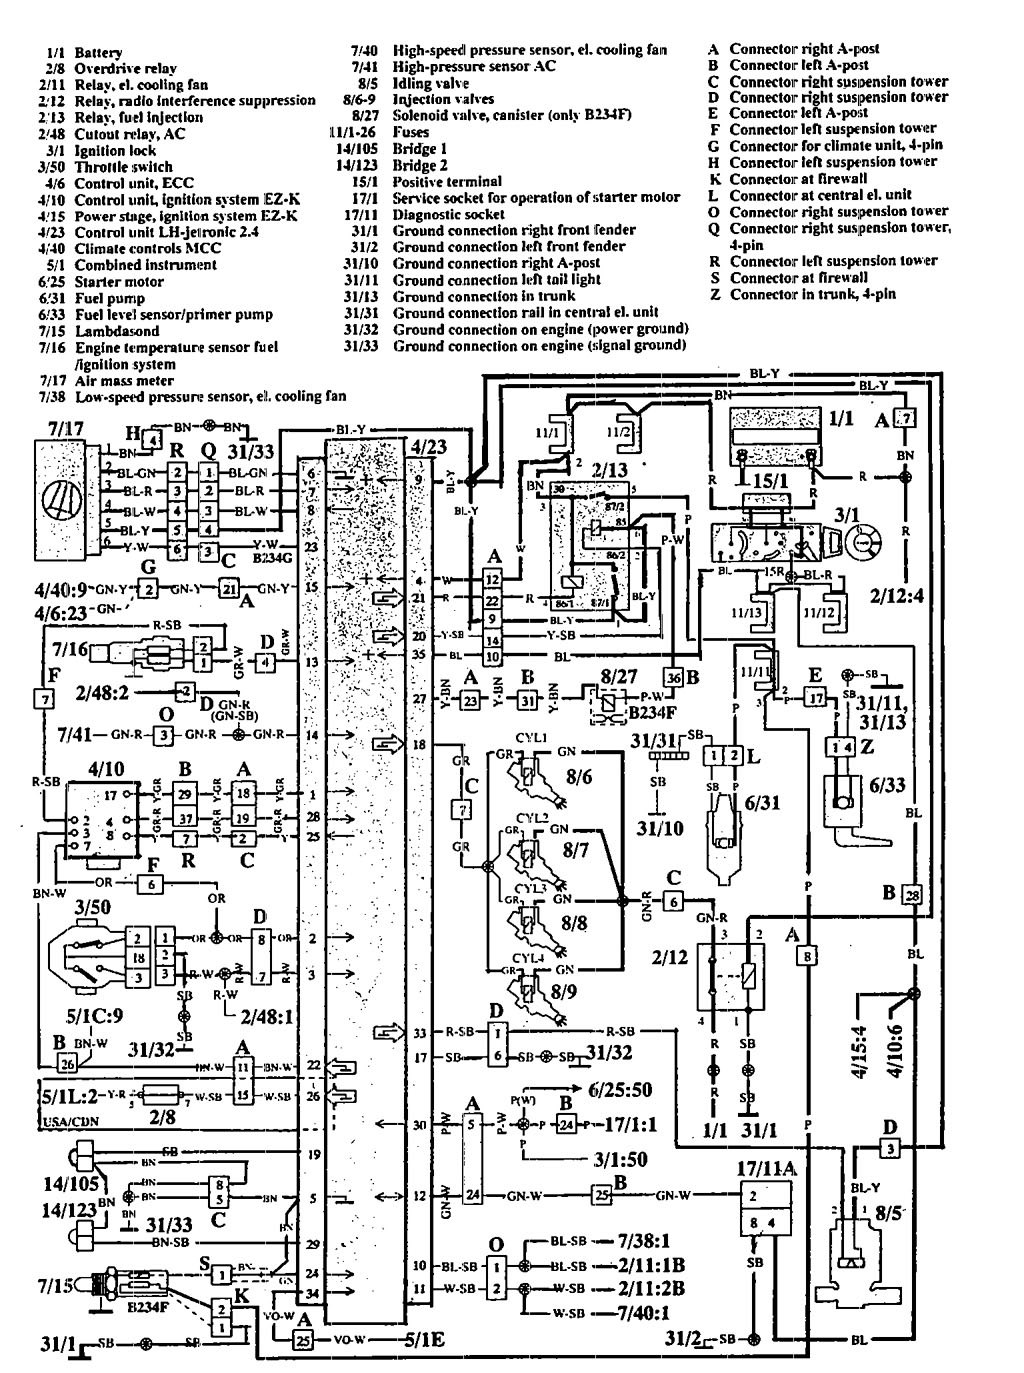 medium resolution of 1992 volvo 940 radio wiring electrical wiring diagrams 1992 volvo 240 radio wiring diagram 1992 volvo 940 radio wiring